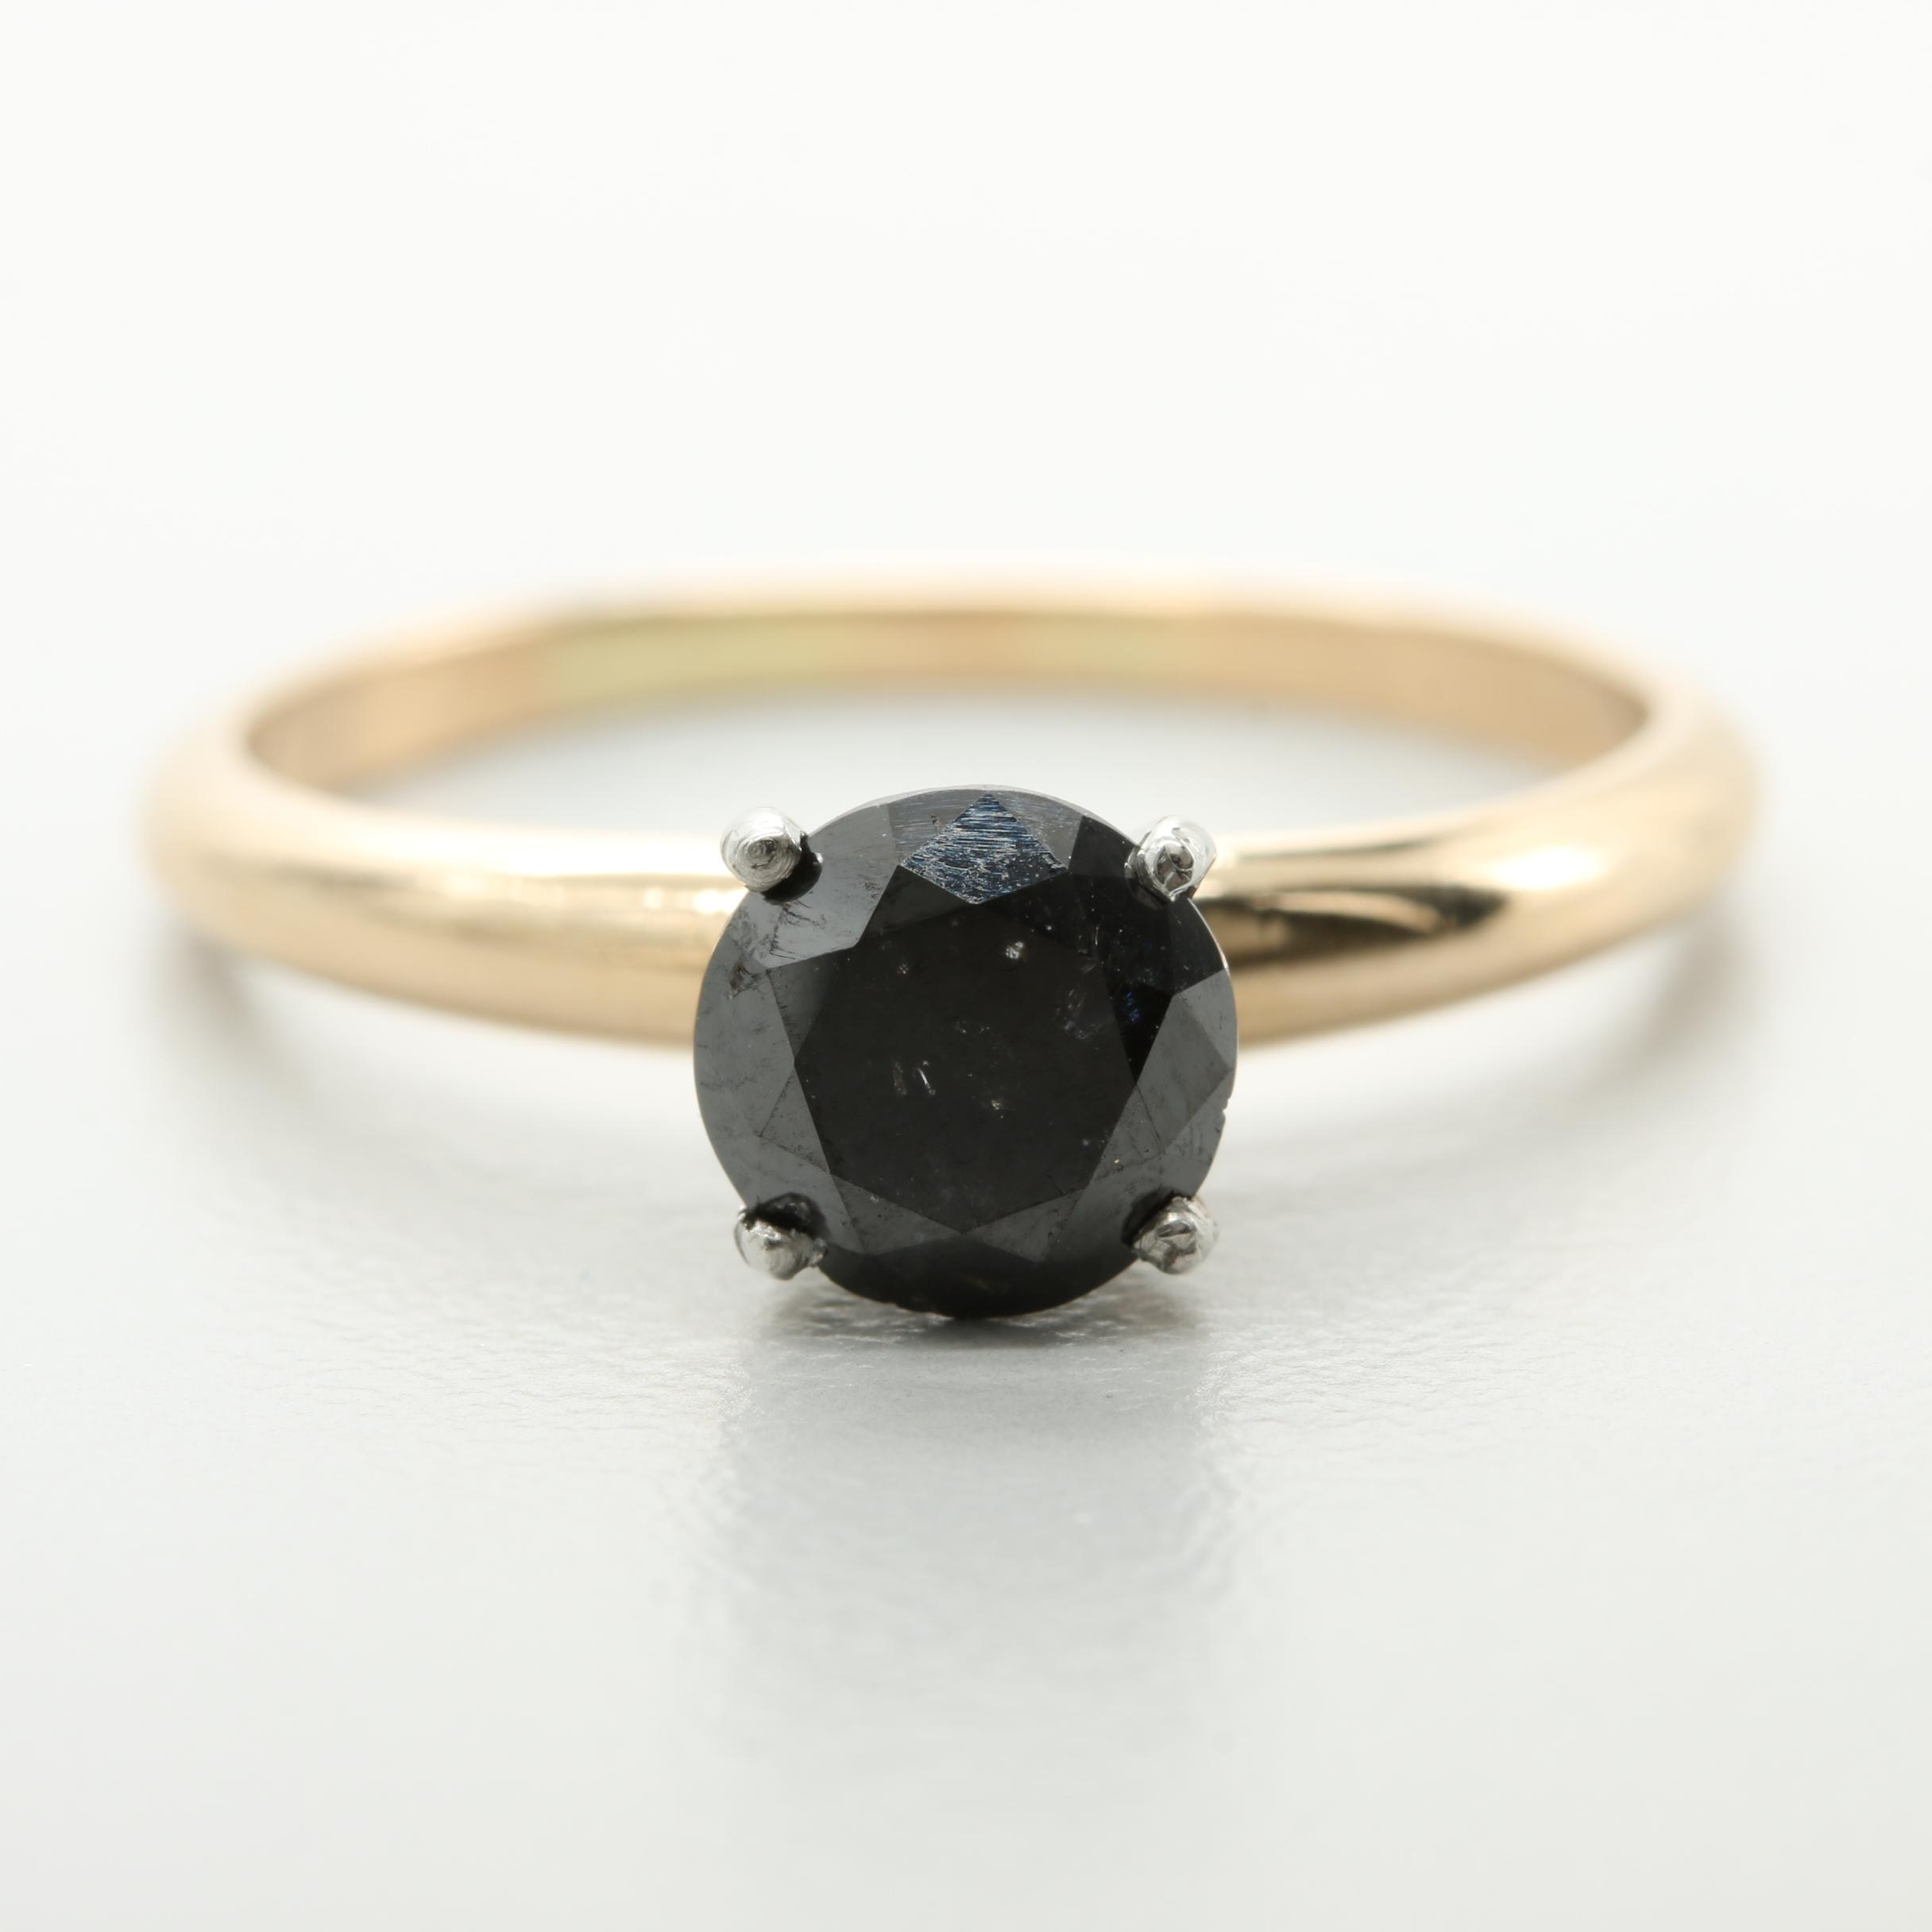 14K Yellow Gold 1.06 CT Black Diamond Solitaire Ring with White Gold Accents